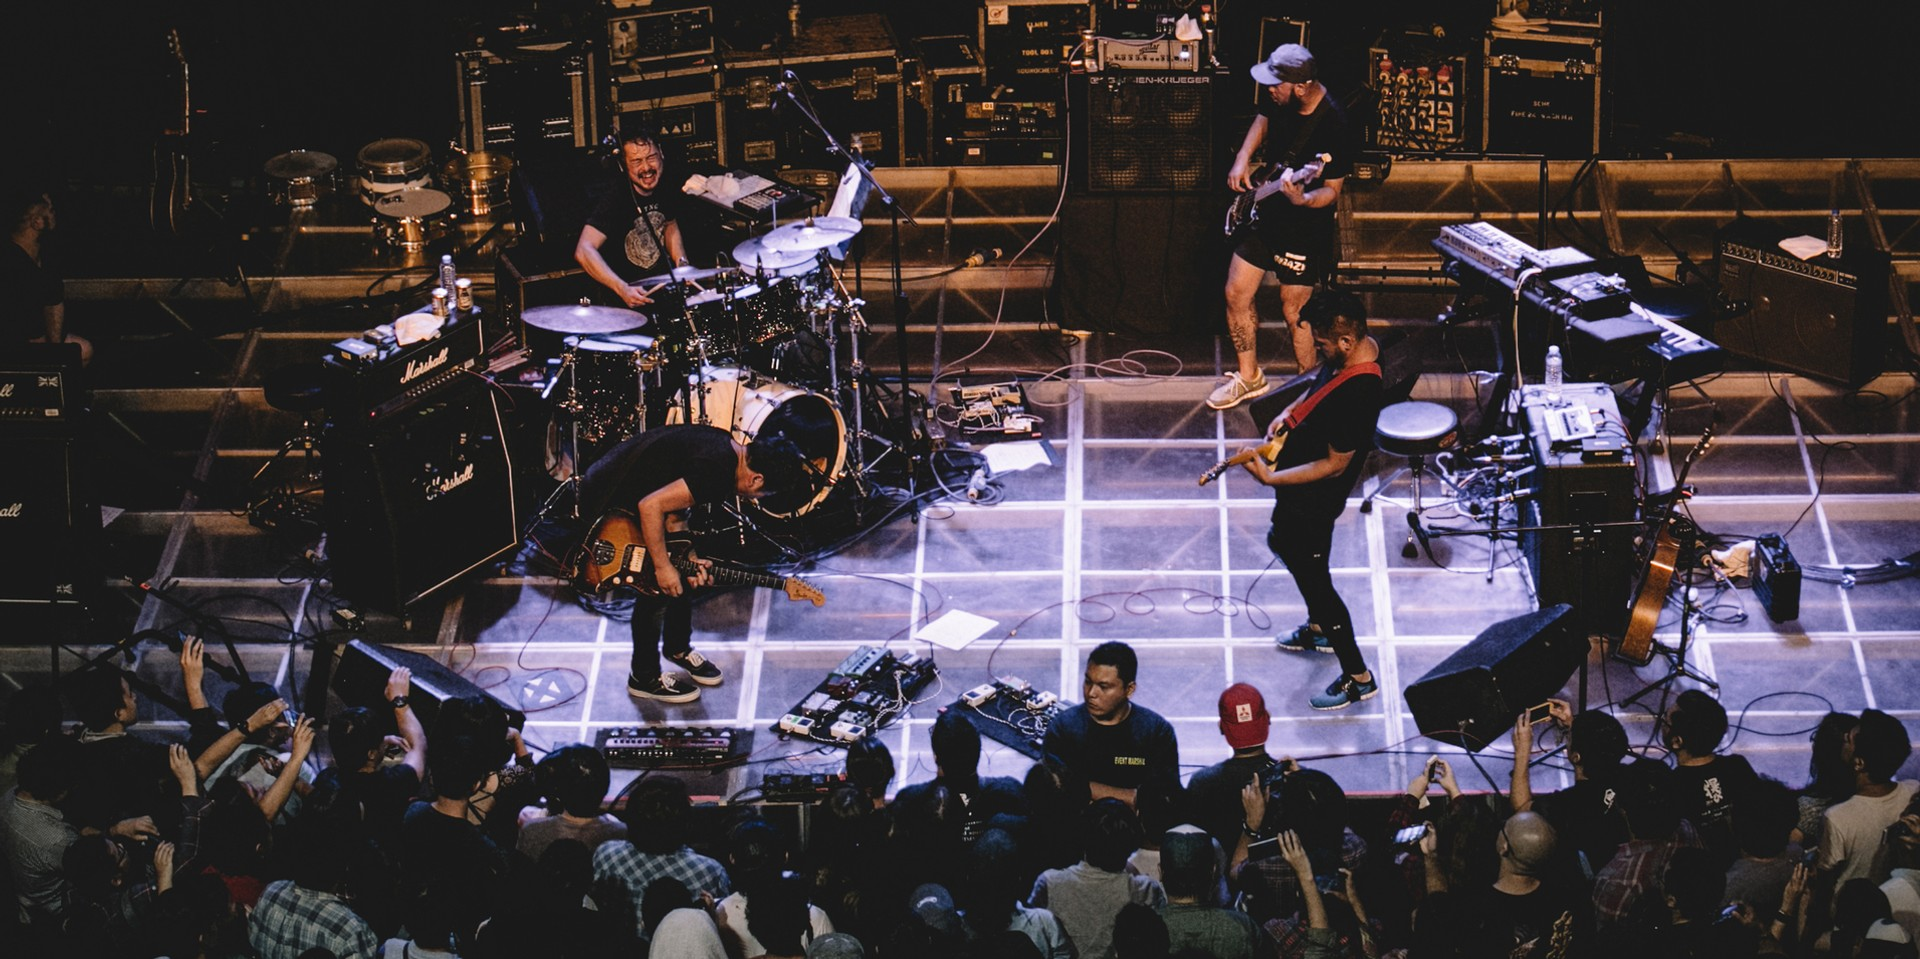 Japanese band toe launch Music Unites Against COVID-19 for the benefit of music venues affected by pandemic